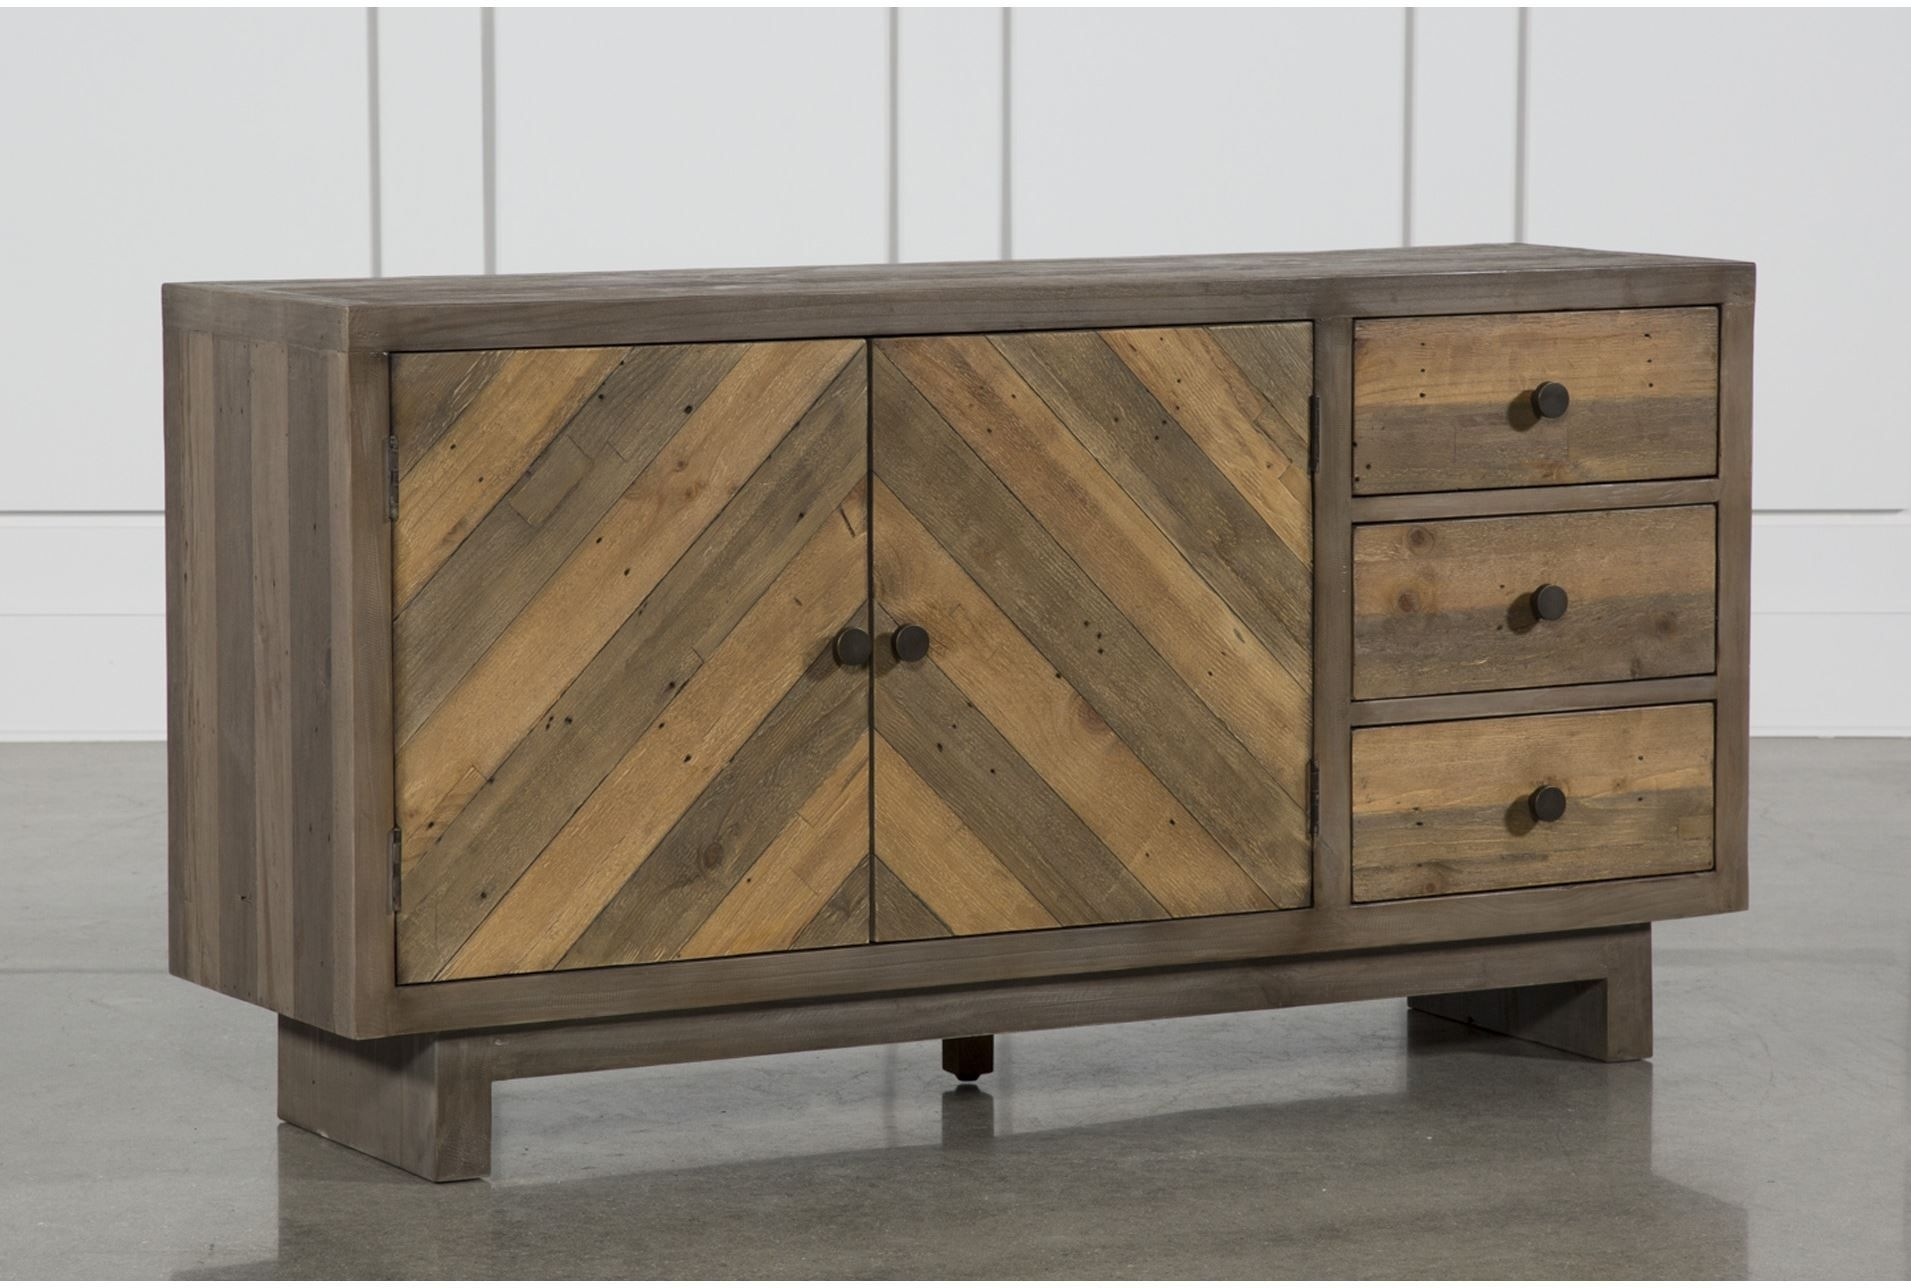 Otb Aged Pine 3 Drawer/2 Door Sideboard, Brown | Pinterest | Products Throughout Mid Burnt Oak 71 Inch Sideboards (View 3 of 30)